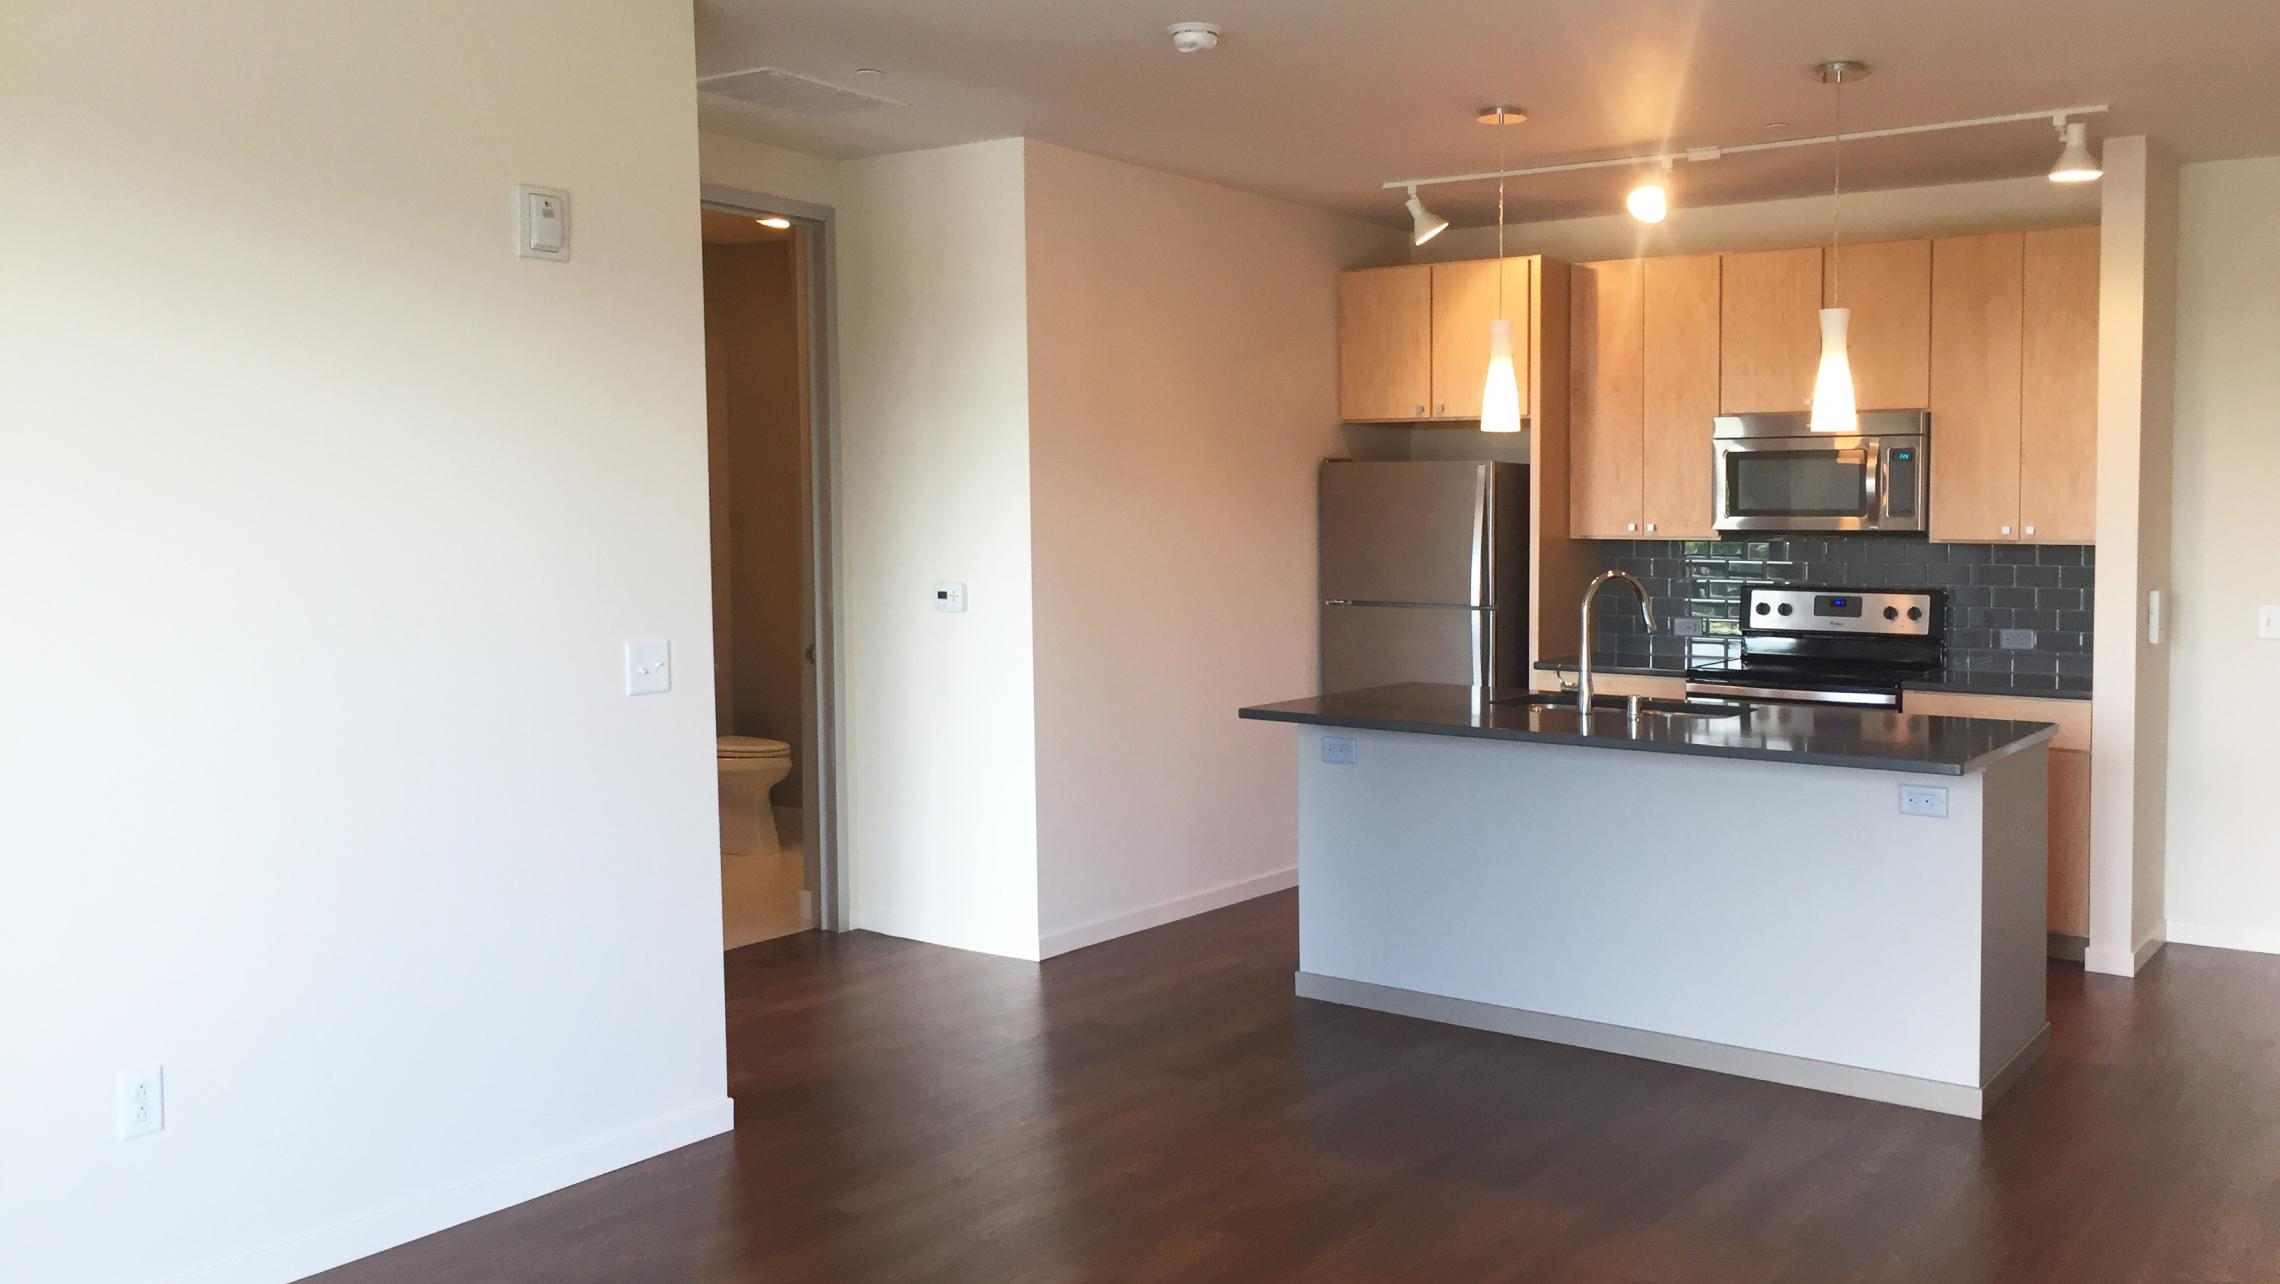 ULI Nine Line Apartment 507 - Kitchen with Stainless Steel Appliances